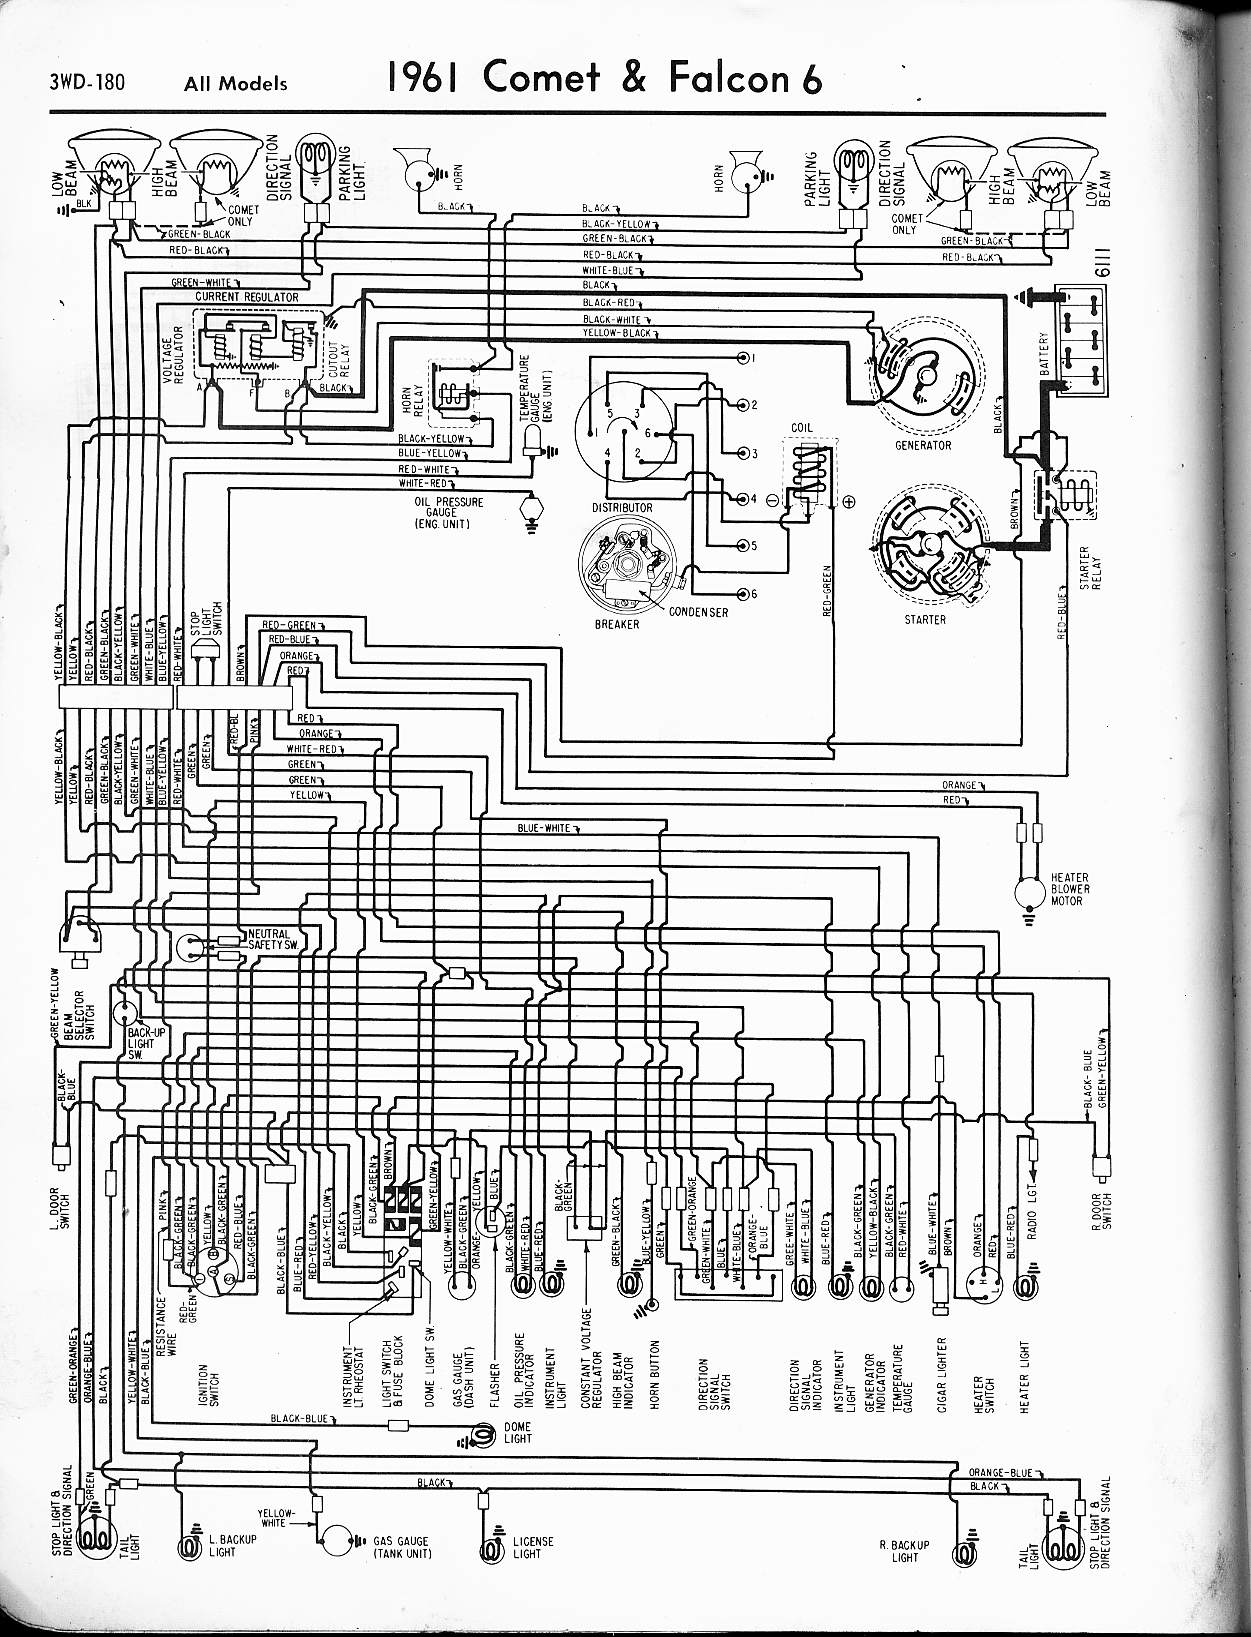 MWire5765 180 1961 ford falcon wiring harness ford ranger wiring harness Ford Truck Wiring Diagrams at crackthecode.co